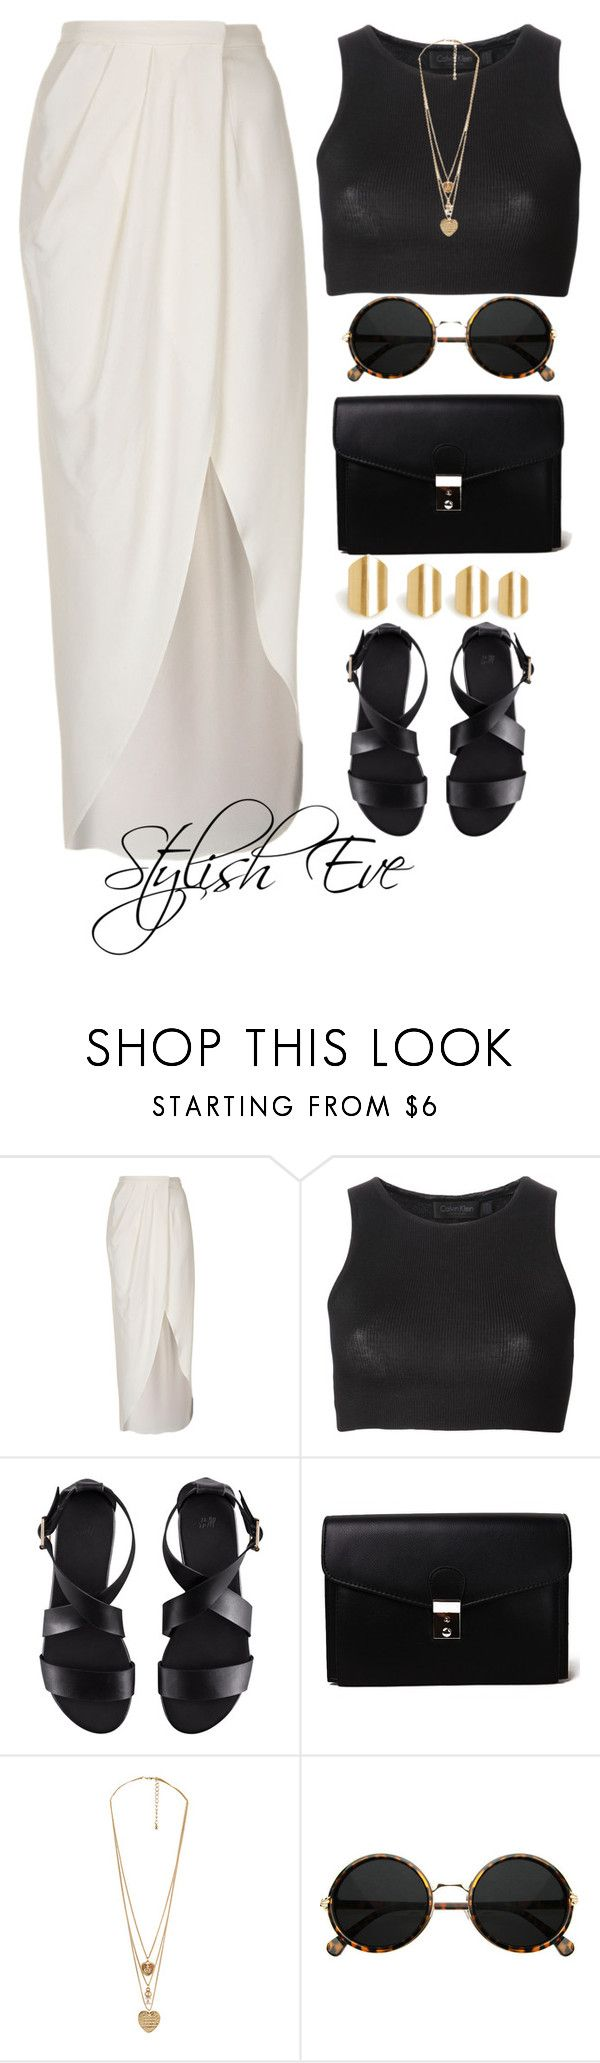 """aml"" by stylisheve ❤ liked on Polyvore featuring Boutique, Calvin Klein Collection, H&M, Akira, Forever 21 and DailyLook"